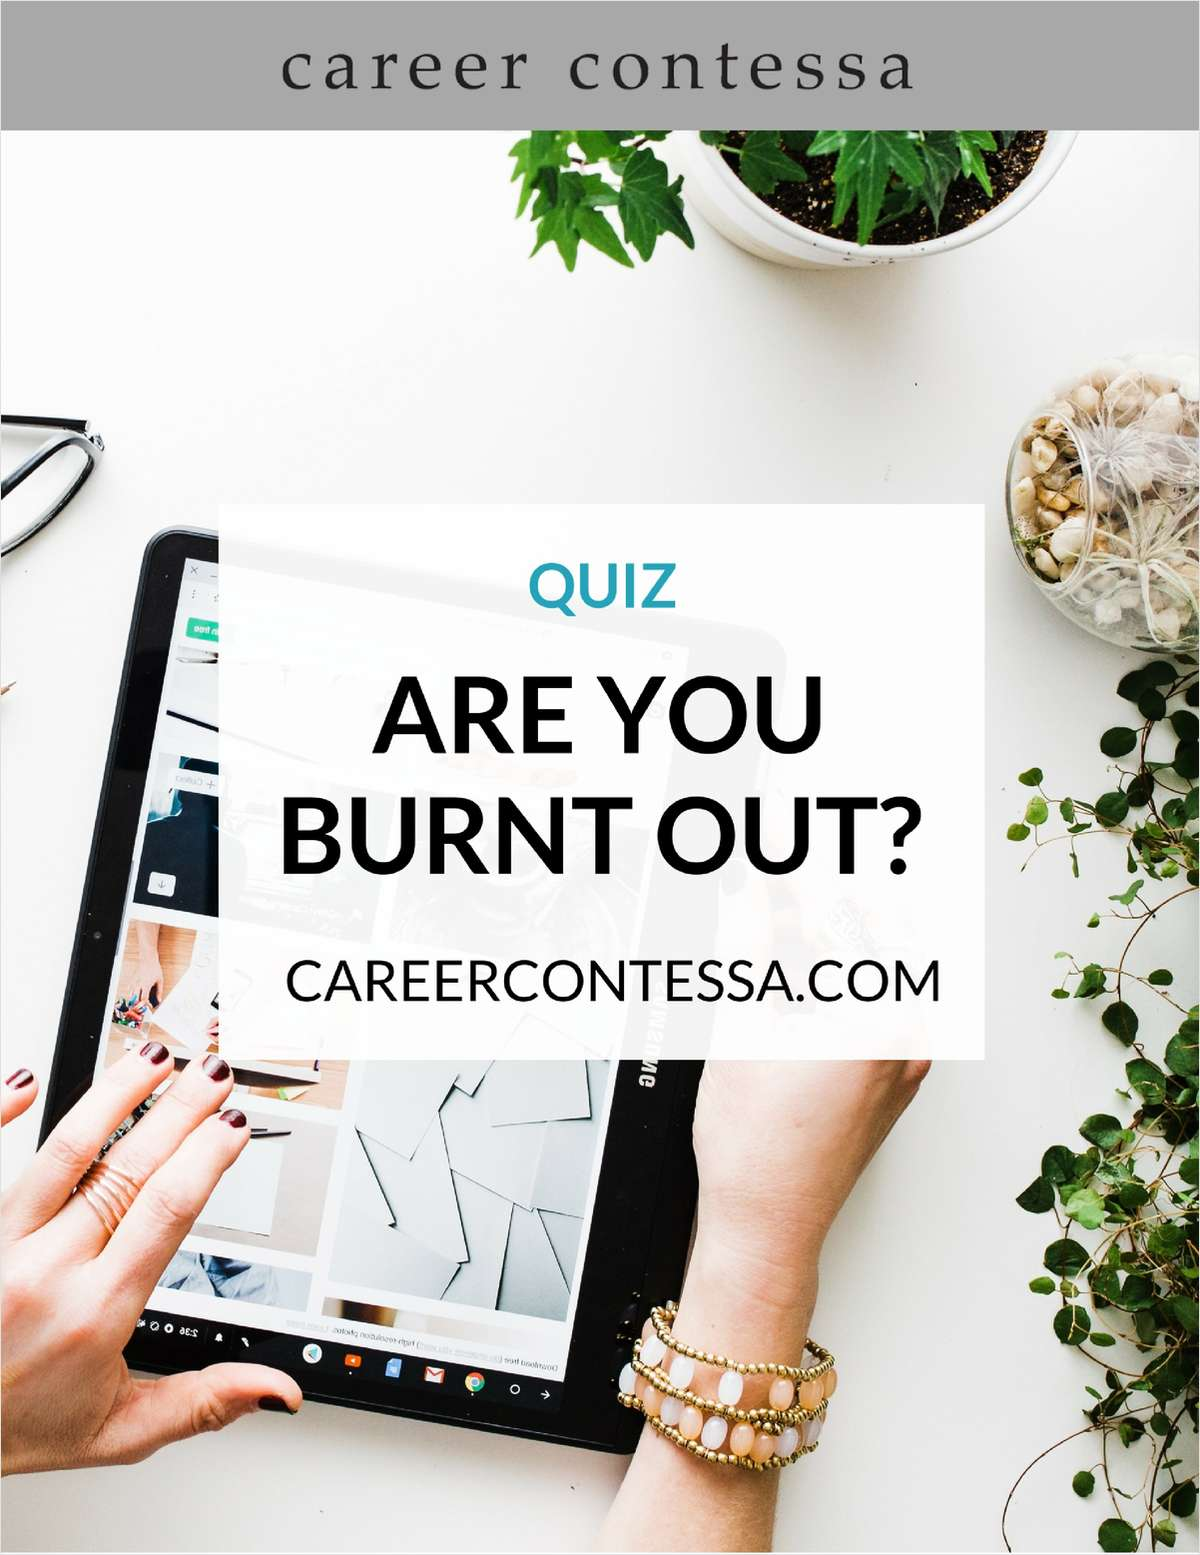 Quiz - Are You Burnt Out?